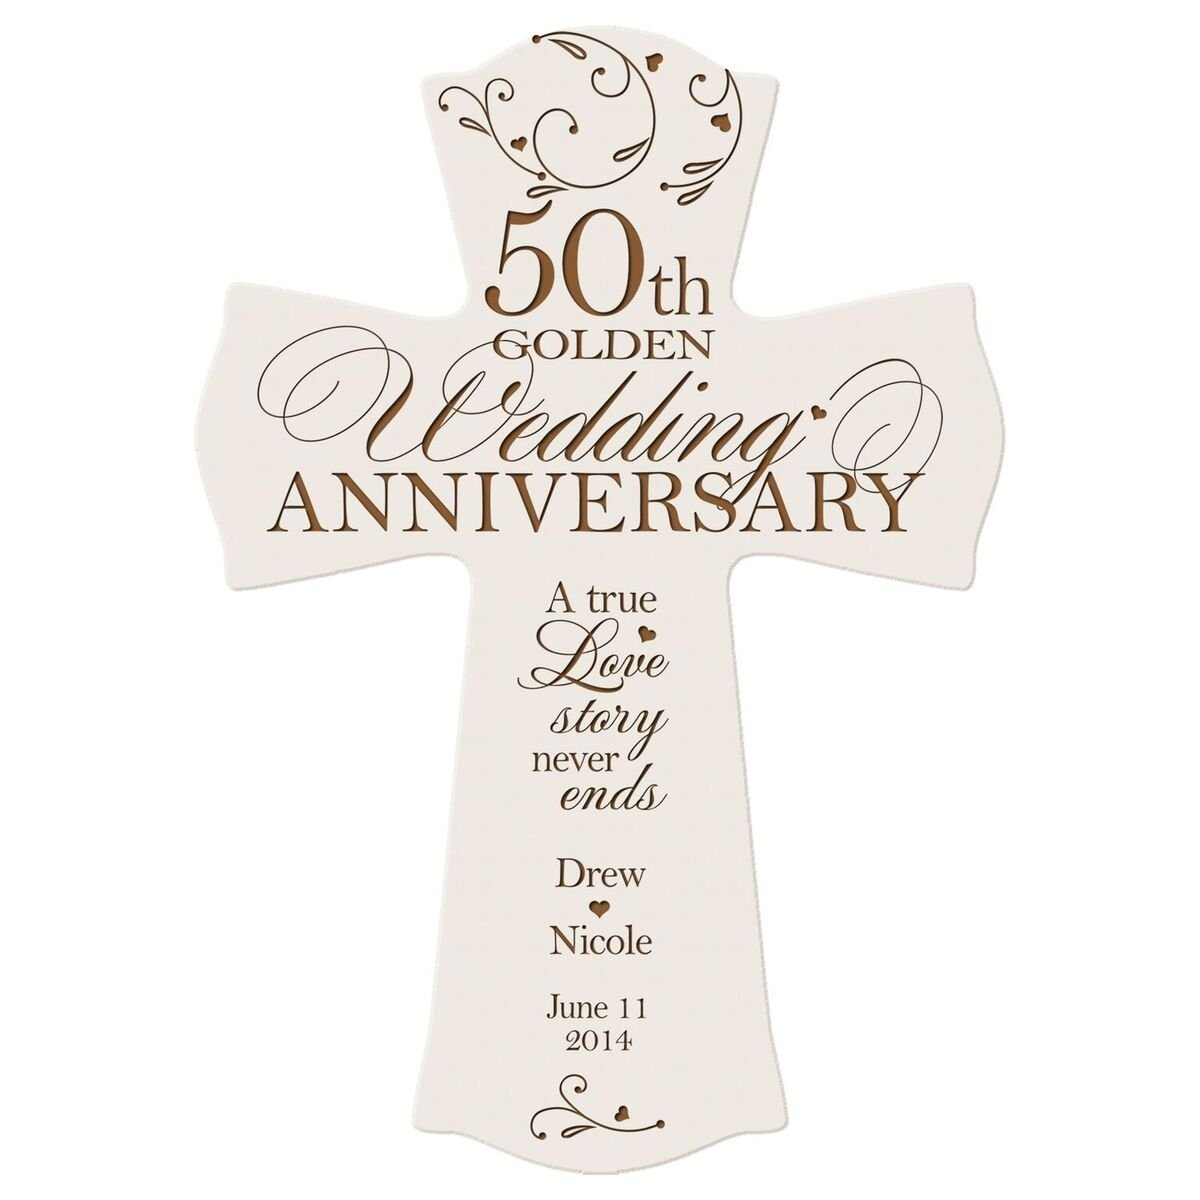 Personalized 50th Wedding Anniversary Wood Wall Cross Gift for Couple 50 Year for Her, for Him A True Love Story Never Ends (8.5'' x 11'') (White) by LifeSong Milestones